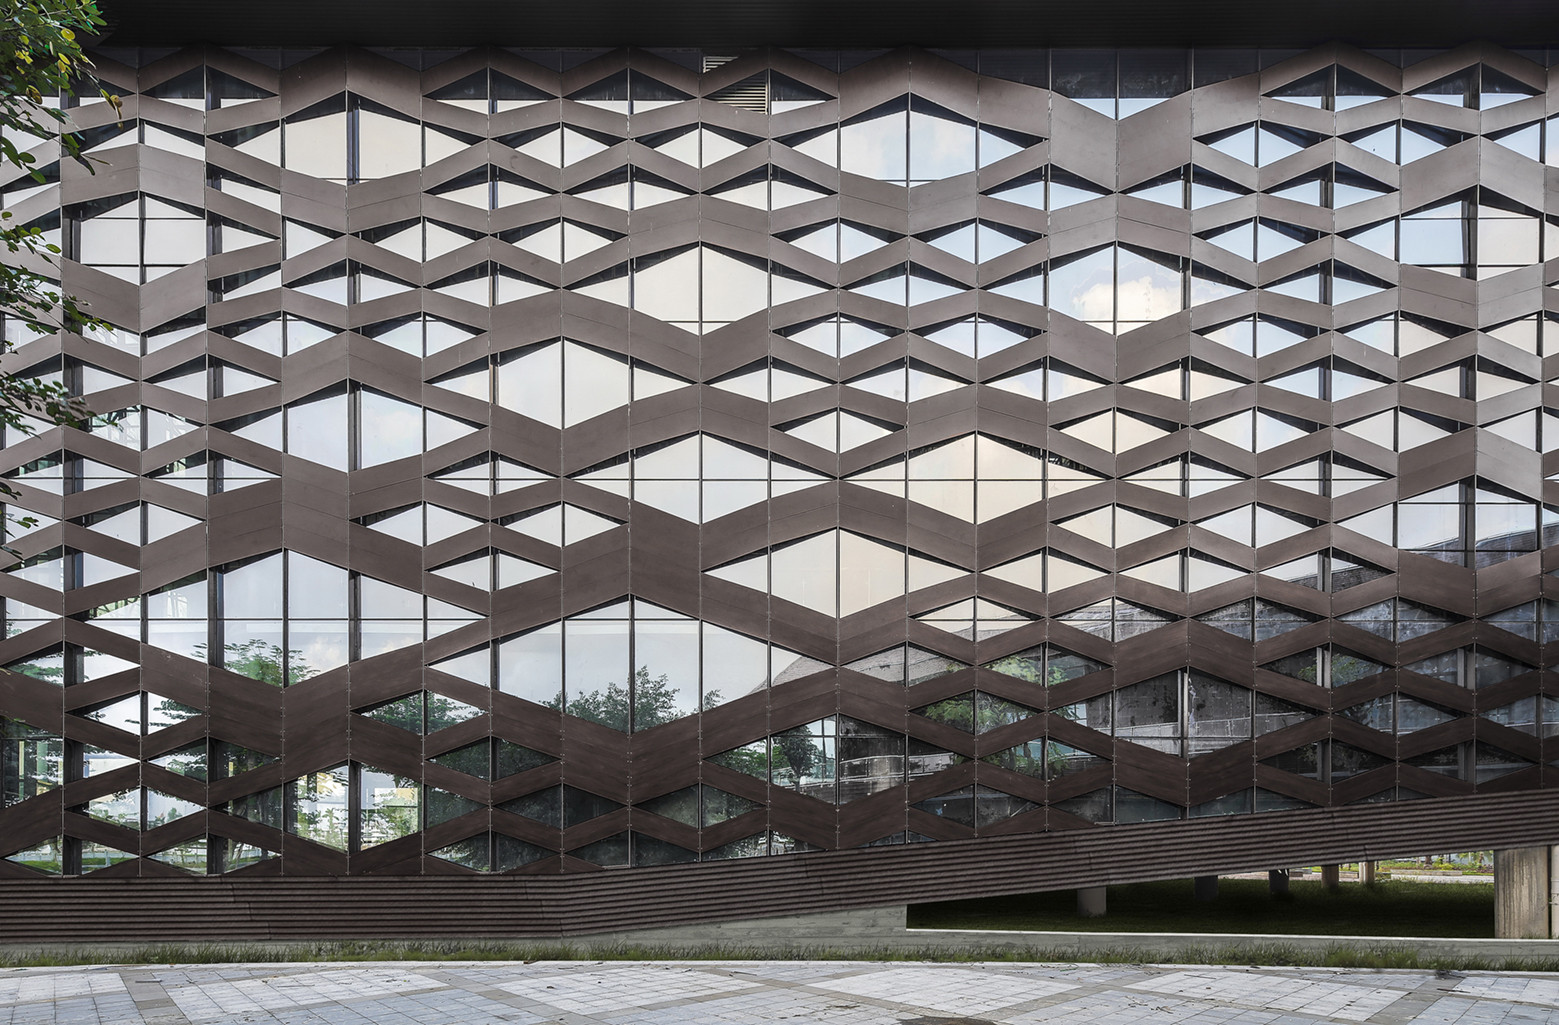 Xinglong Visitor Center / Atelier Alter, Courtesy of Atelier Alter